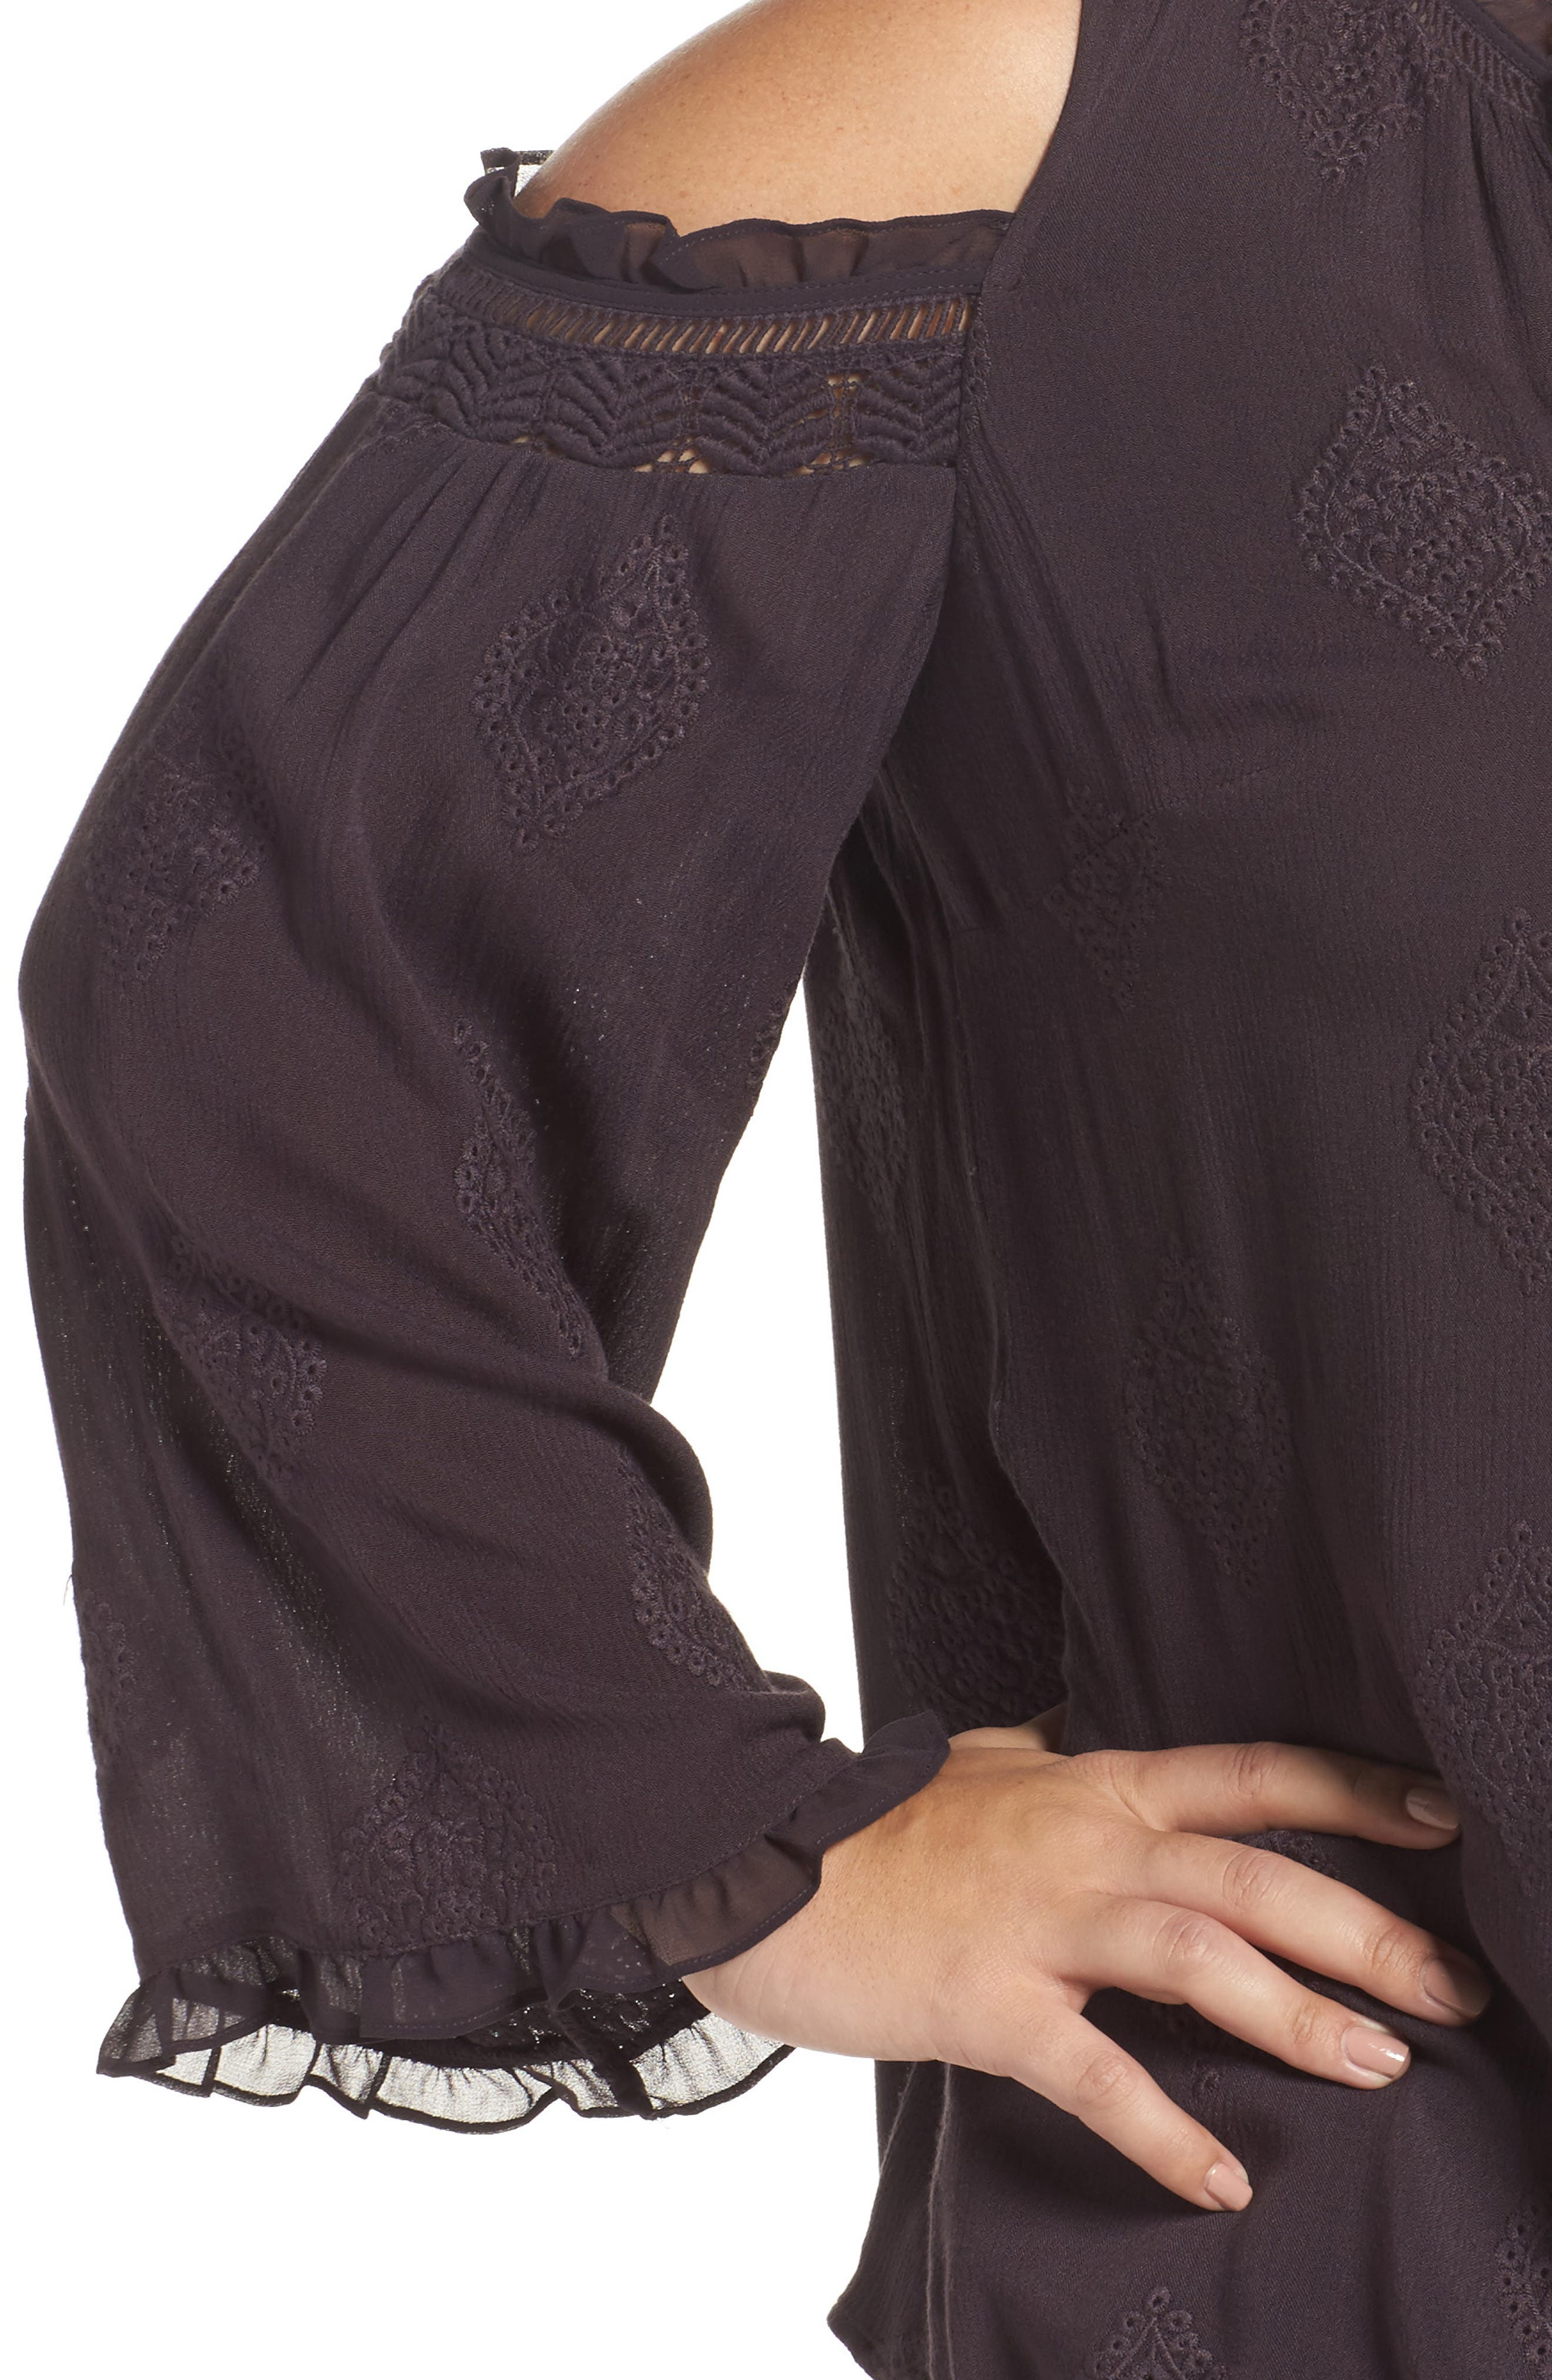 Embroidered Peasant Blouse,                             Alternate thumbnail 4, color,                             C453n Charcoal